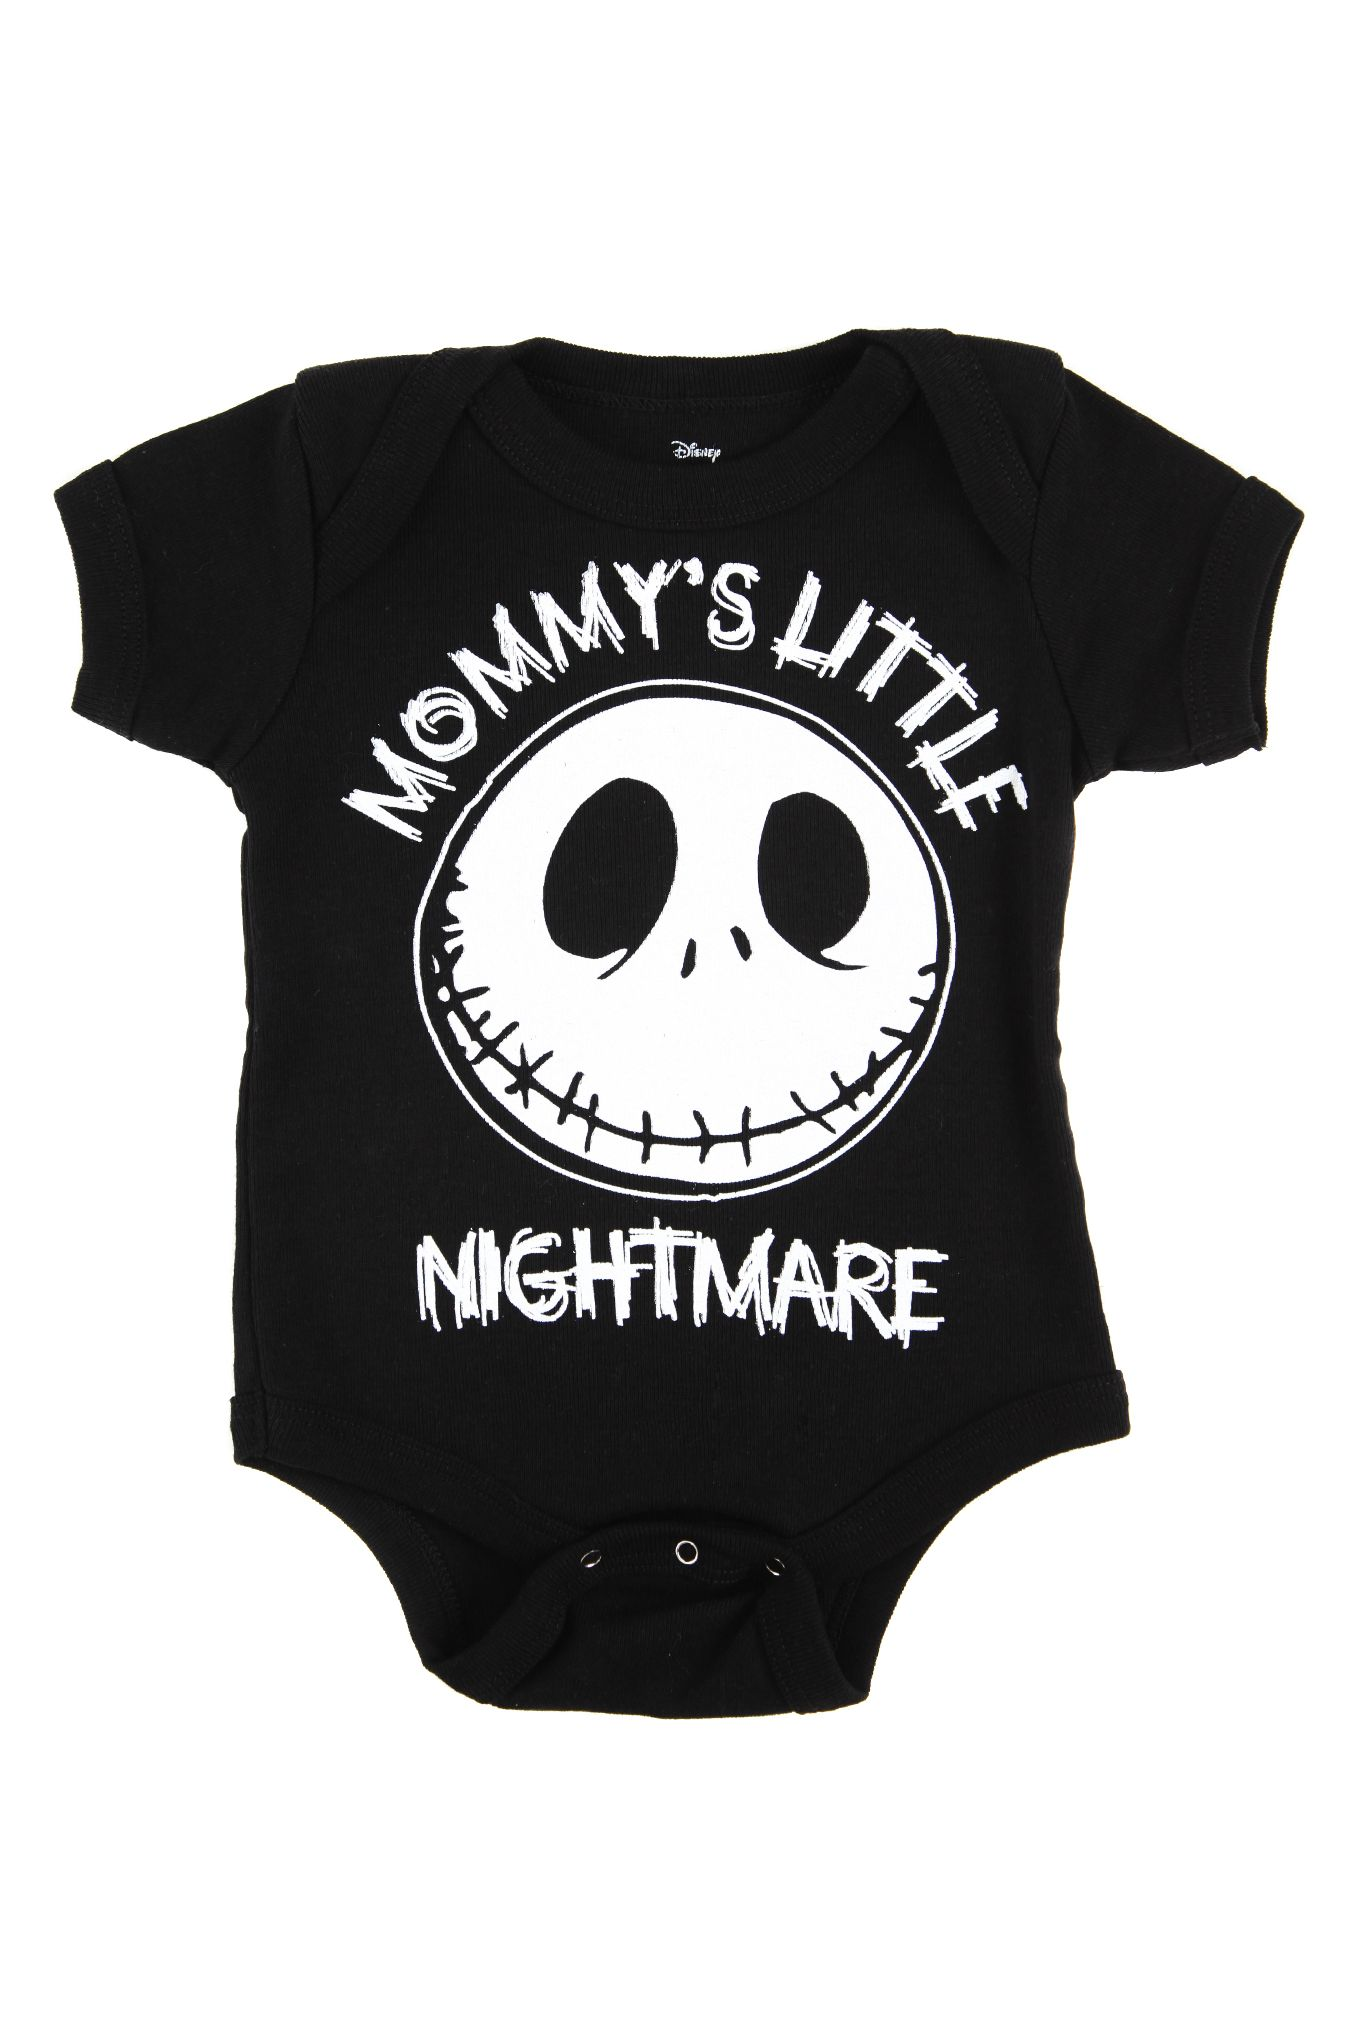 The Nightmare Before Christmas Mommy S Little Nightmare